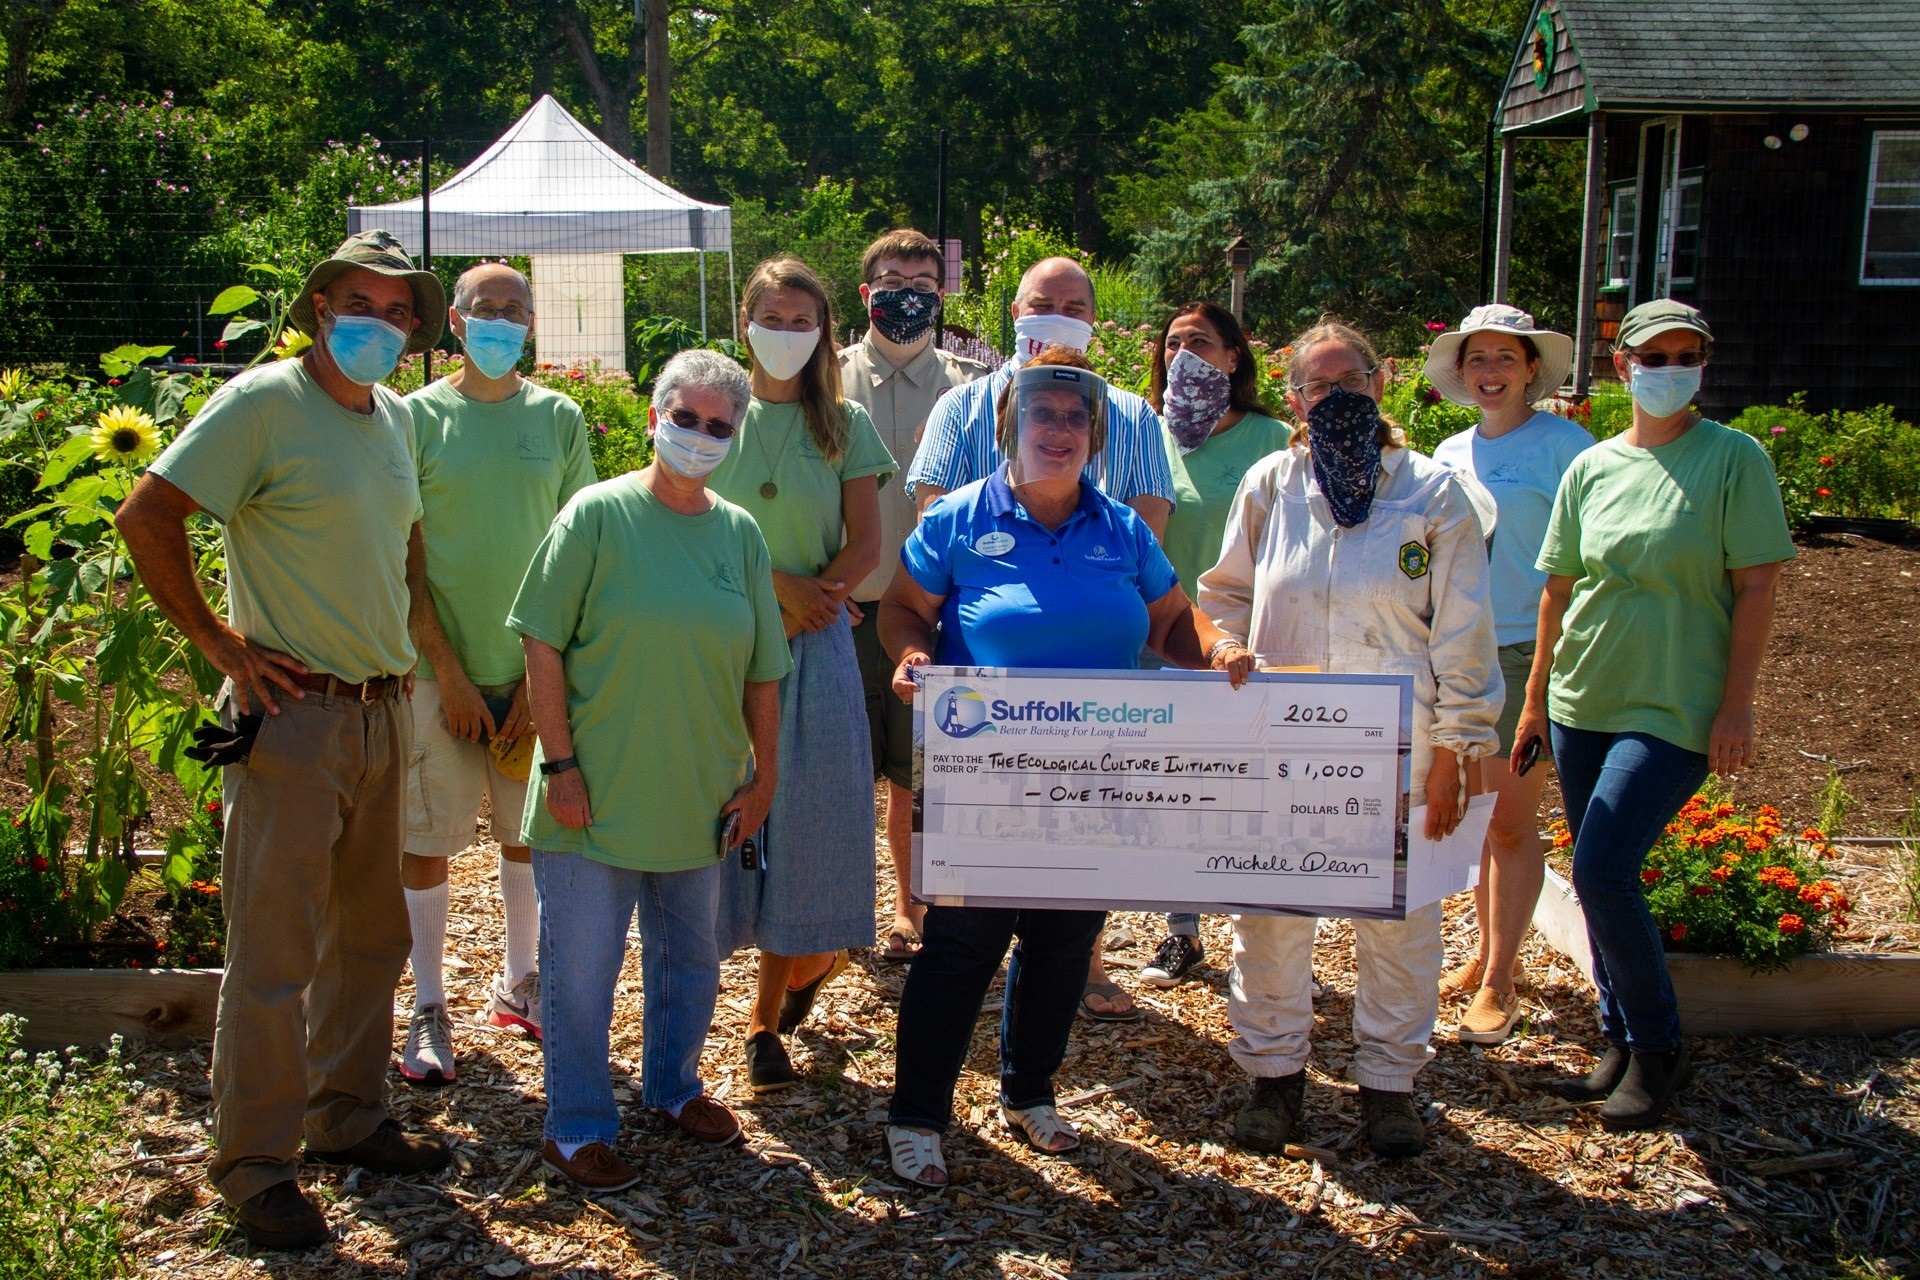 Staff and volunteers of the Ecological Culture Initiative with Debra Castro, Suffolk Federal Riverhead Branch Manager.